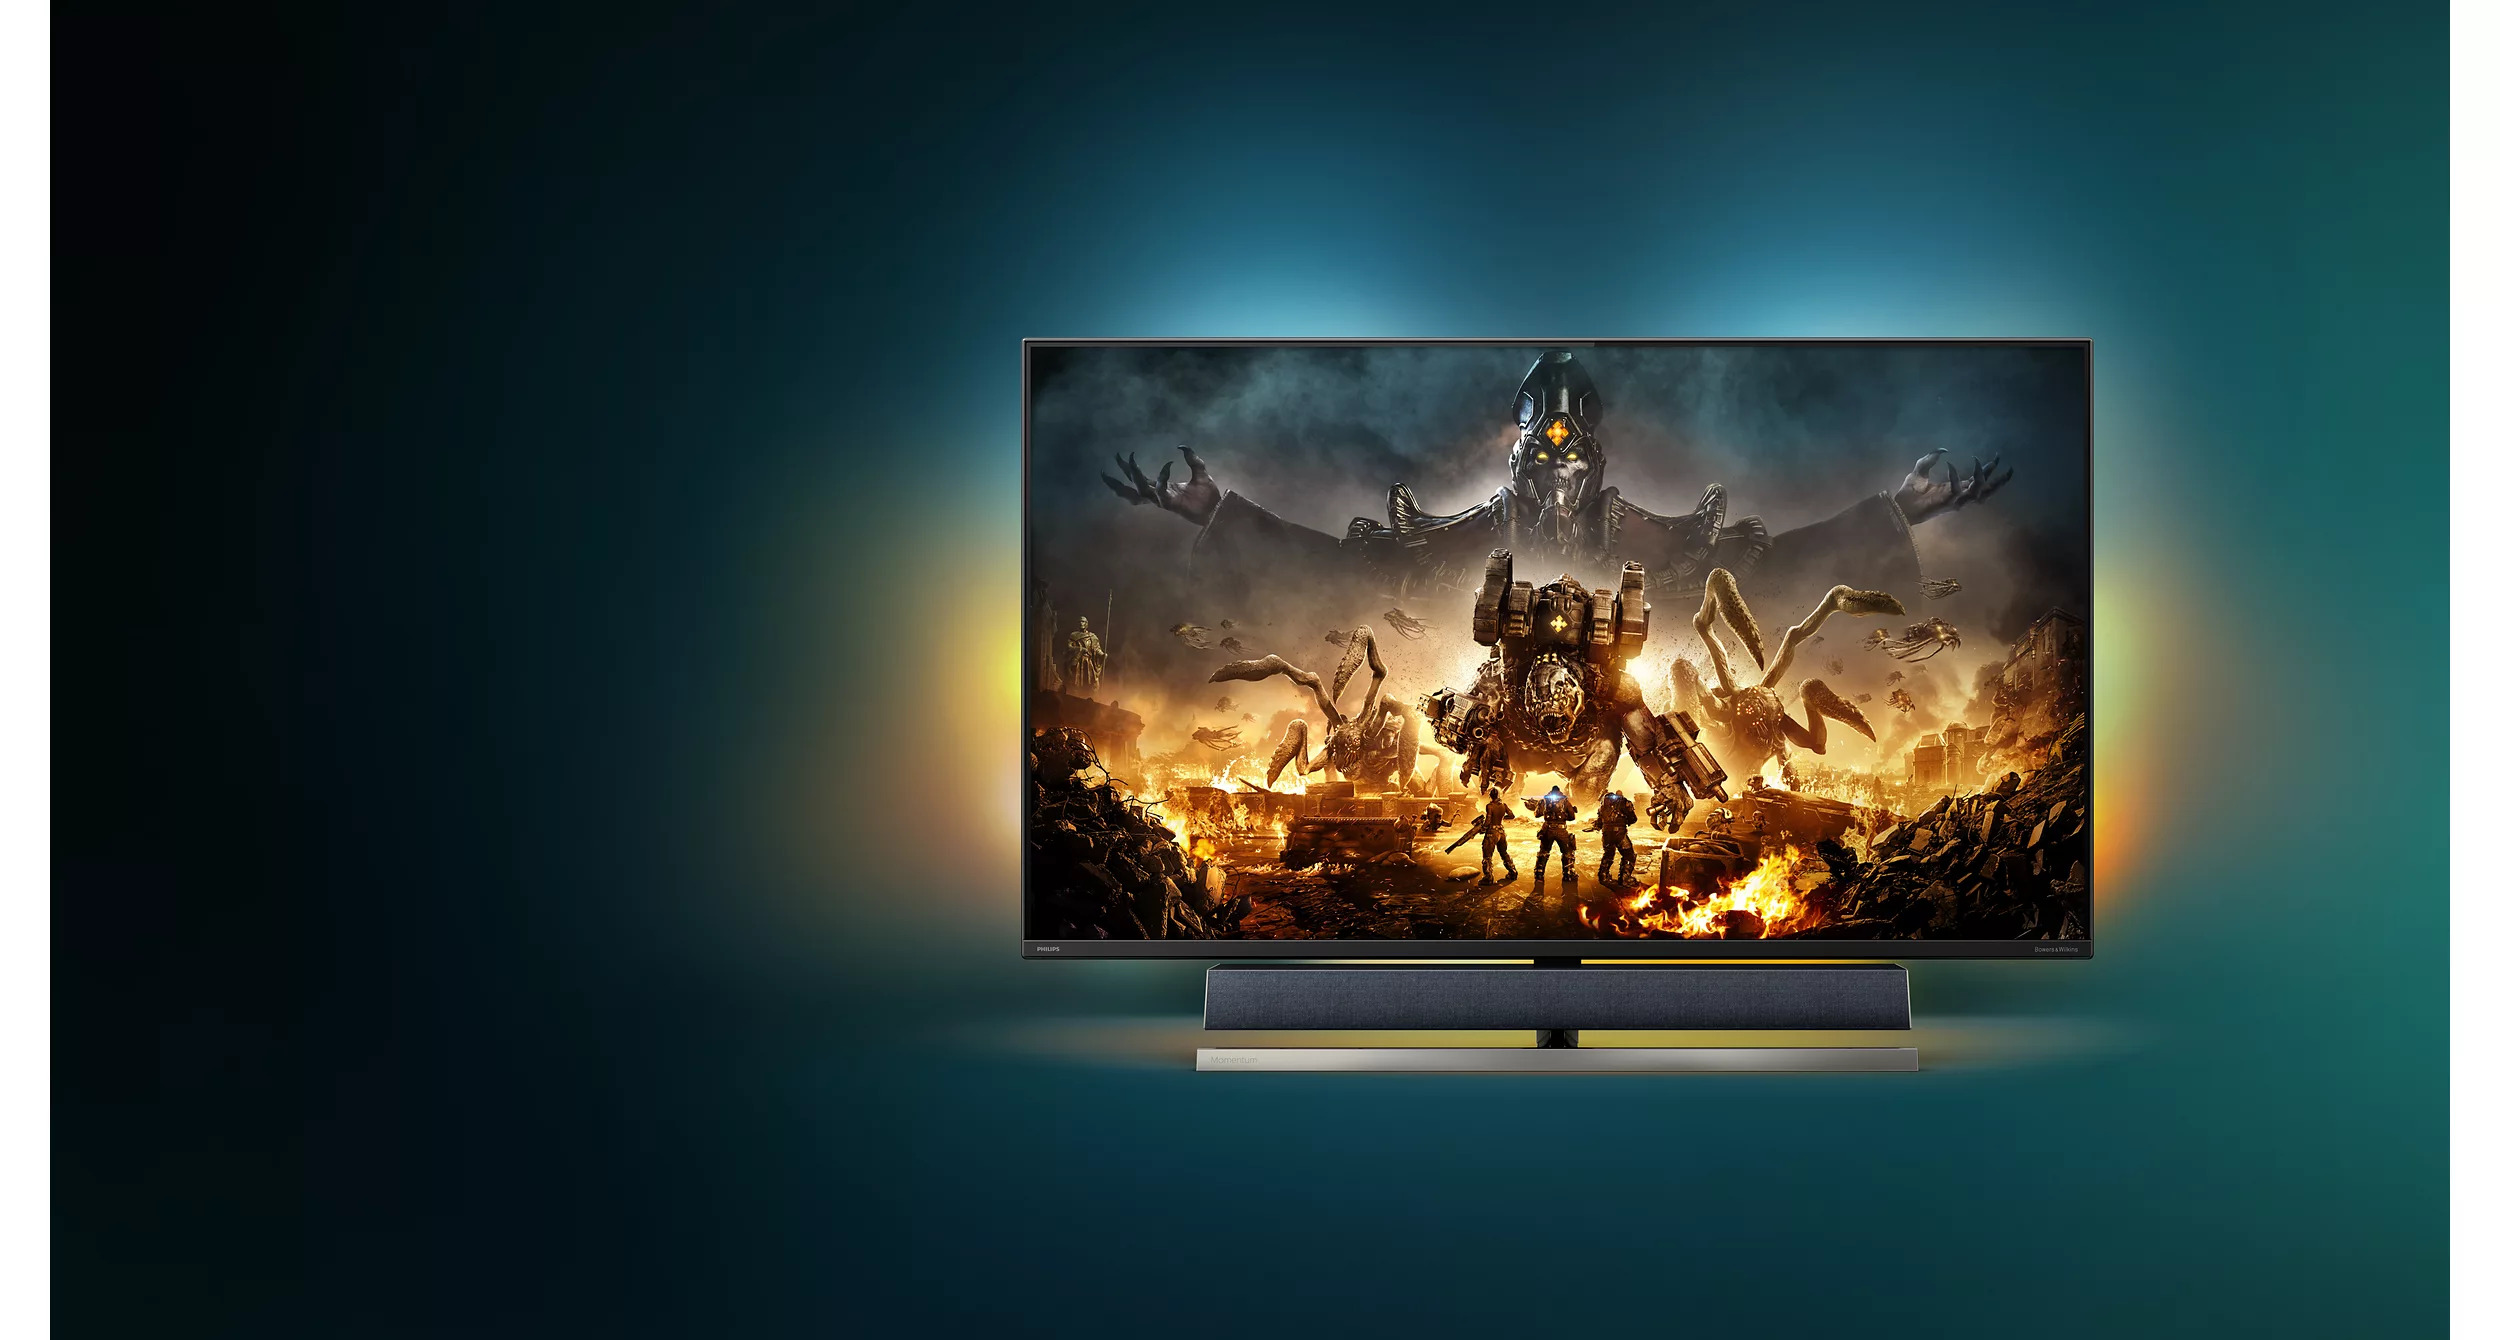 Phillips Launches The World's First 'Designed For Xbox' Gaming Monitor: The 55″ 4K Momentum 559M1RYV Gaming Monitor